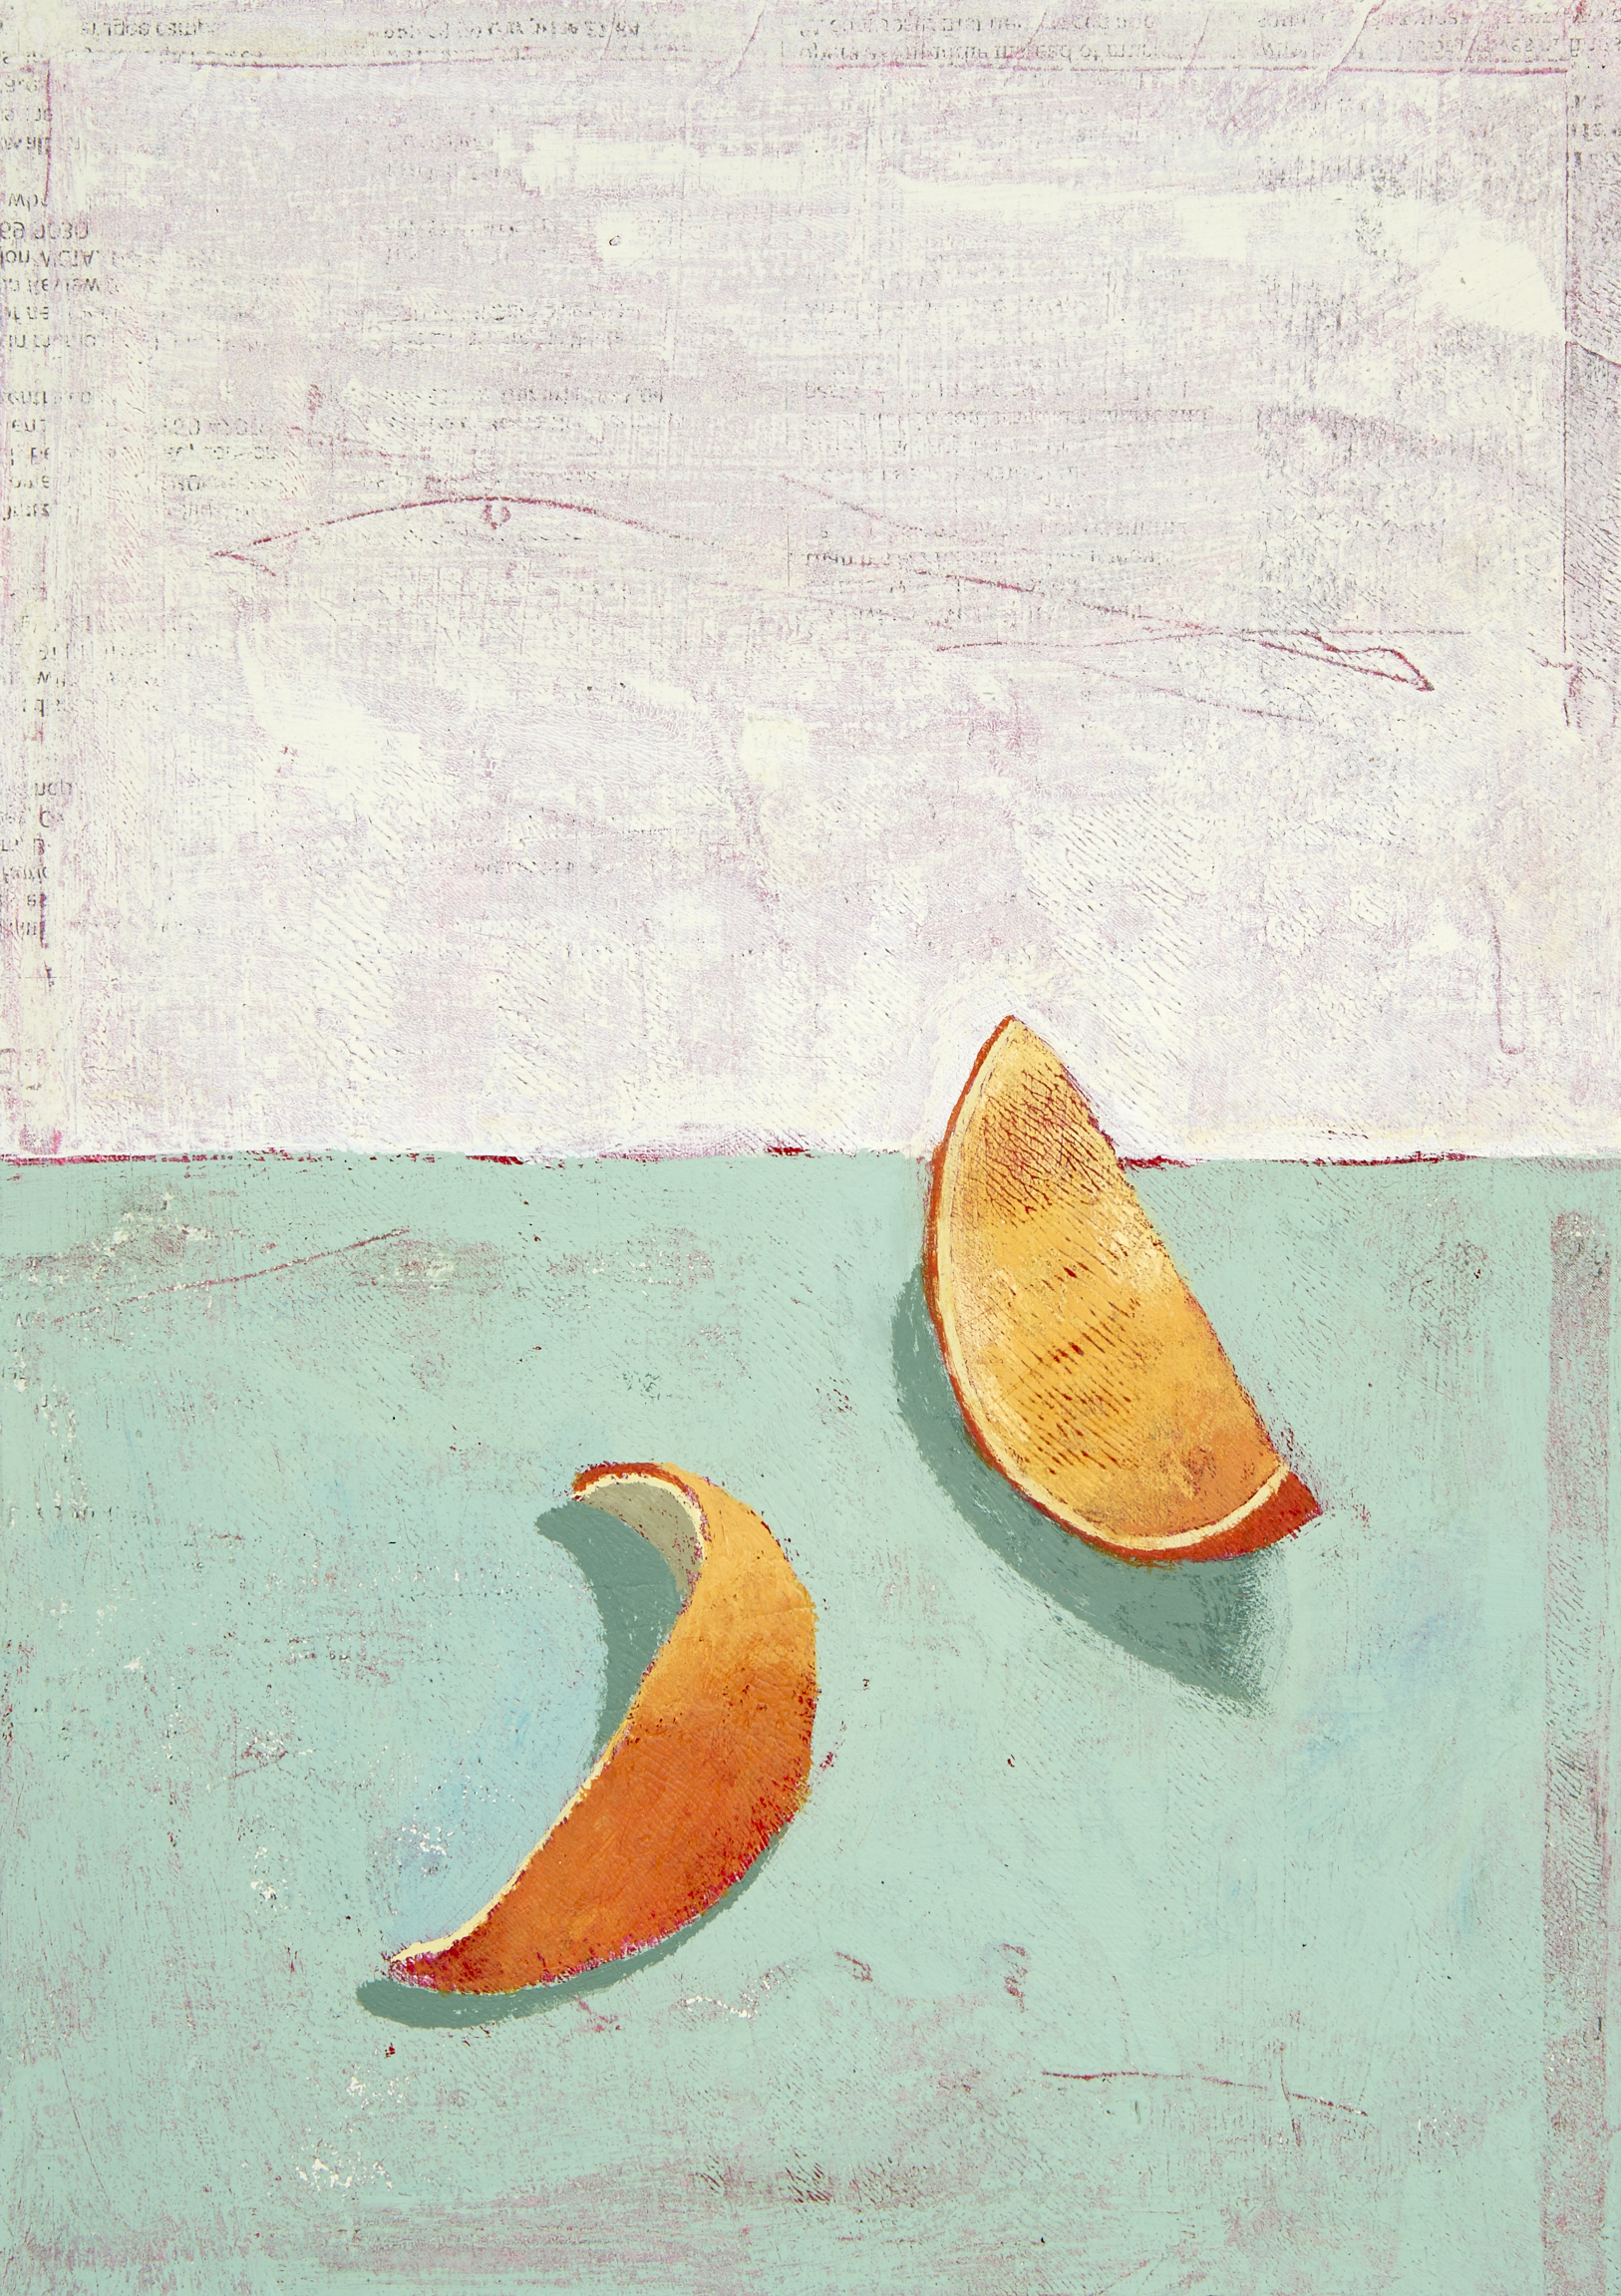 David Lyon Art - Two Orange Peels - 150dpi.jpg